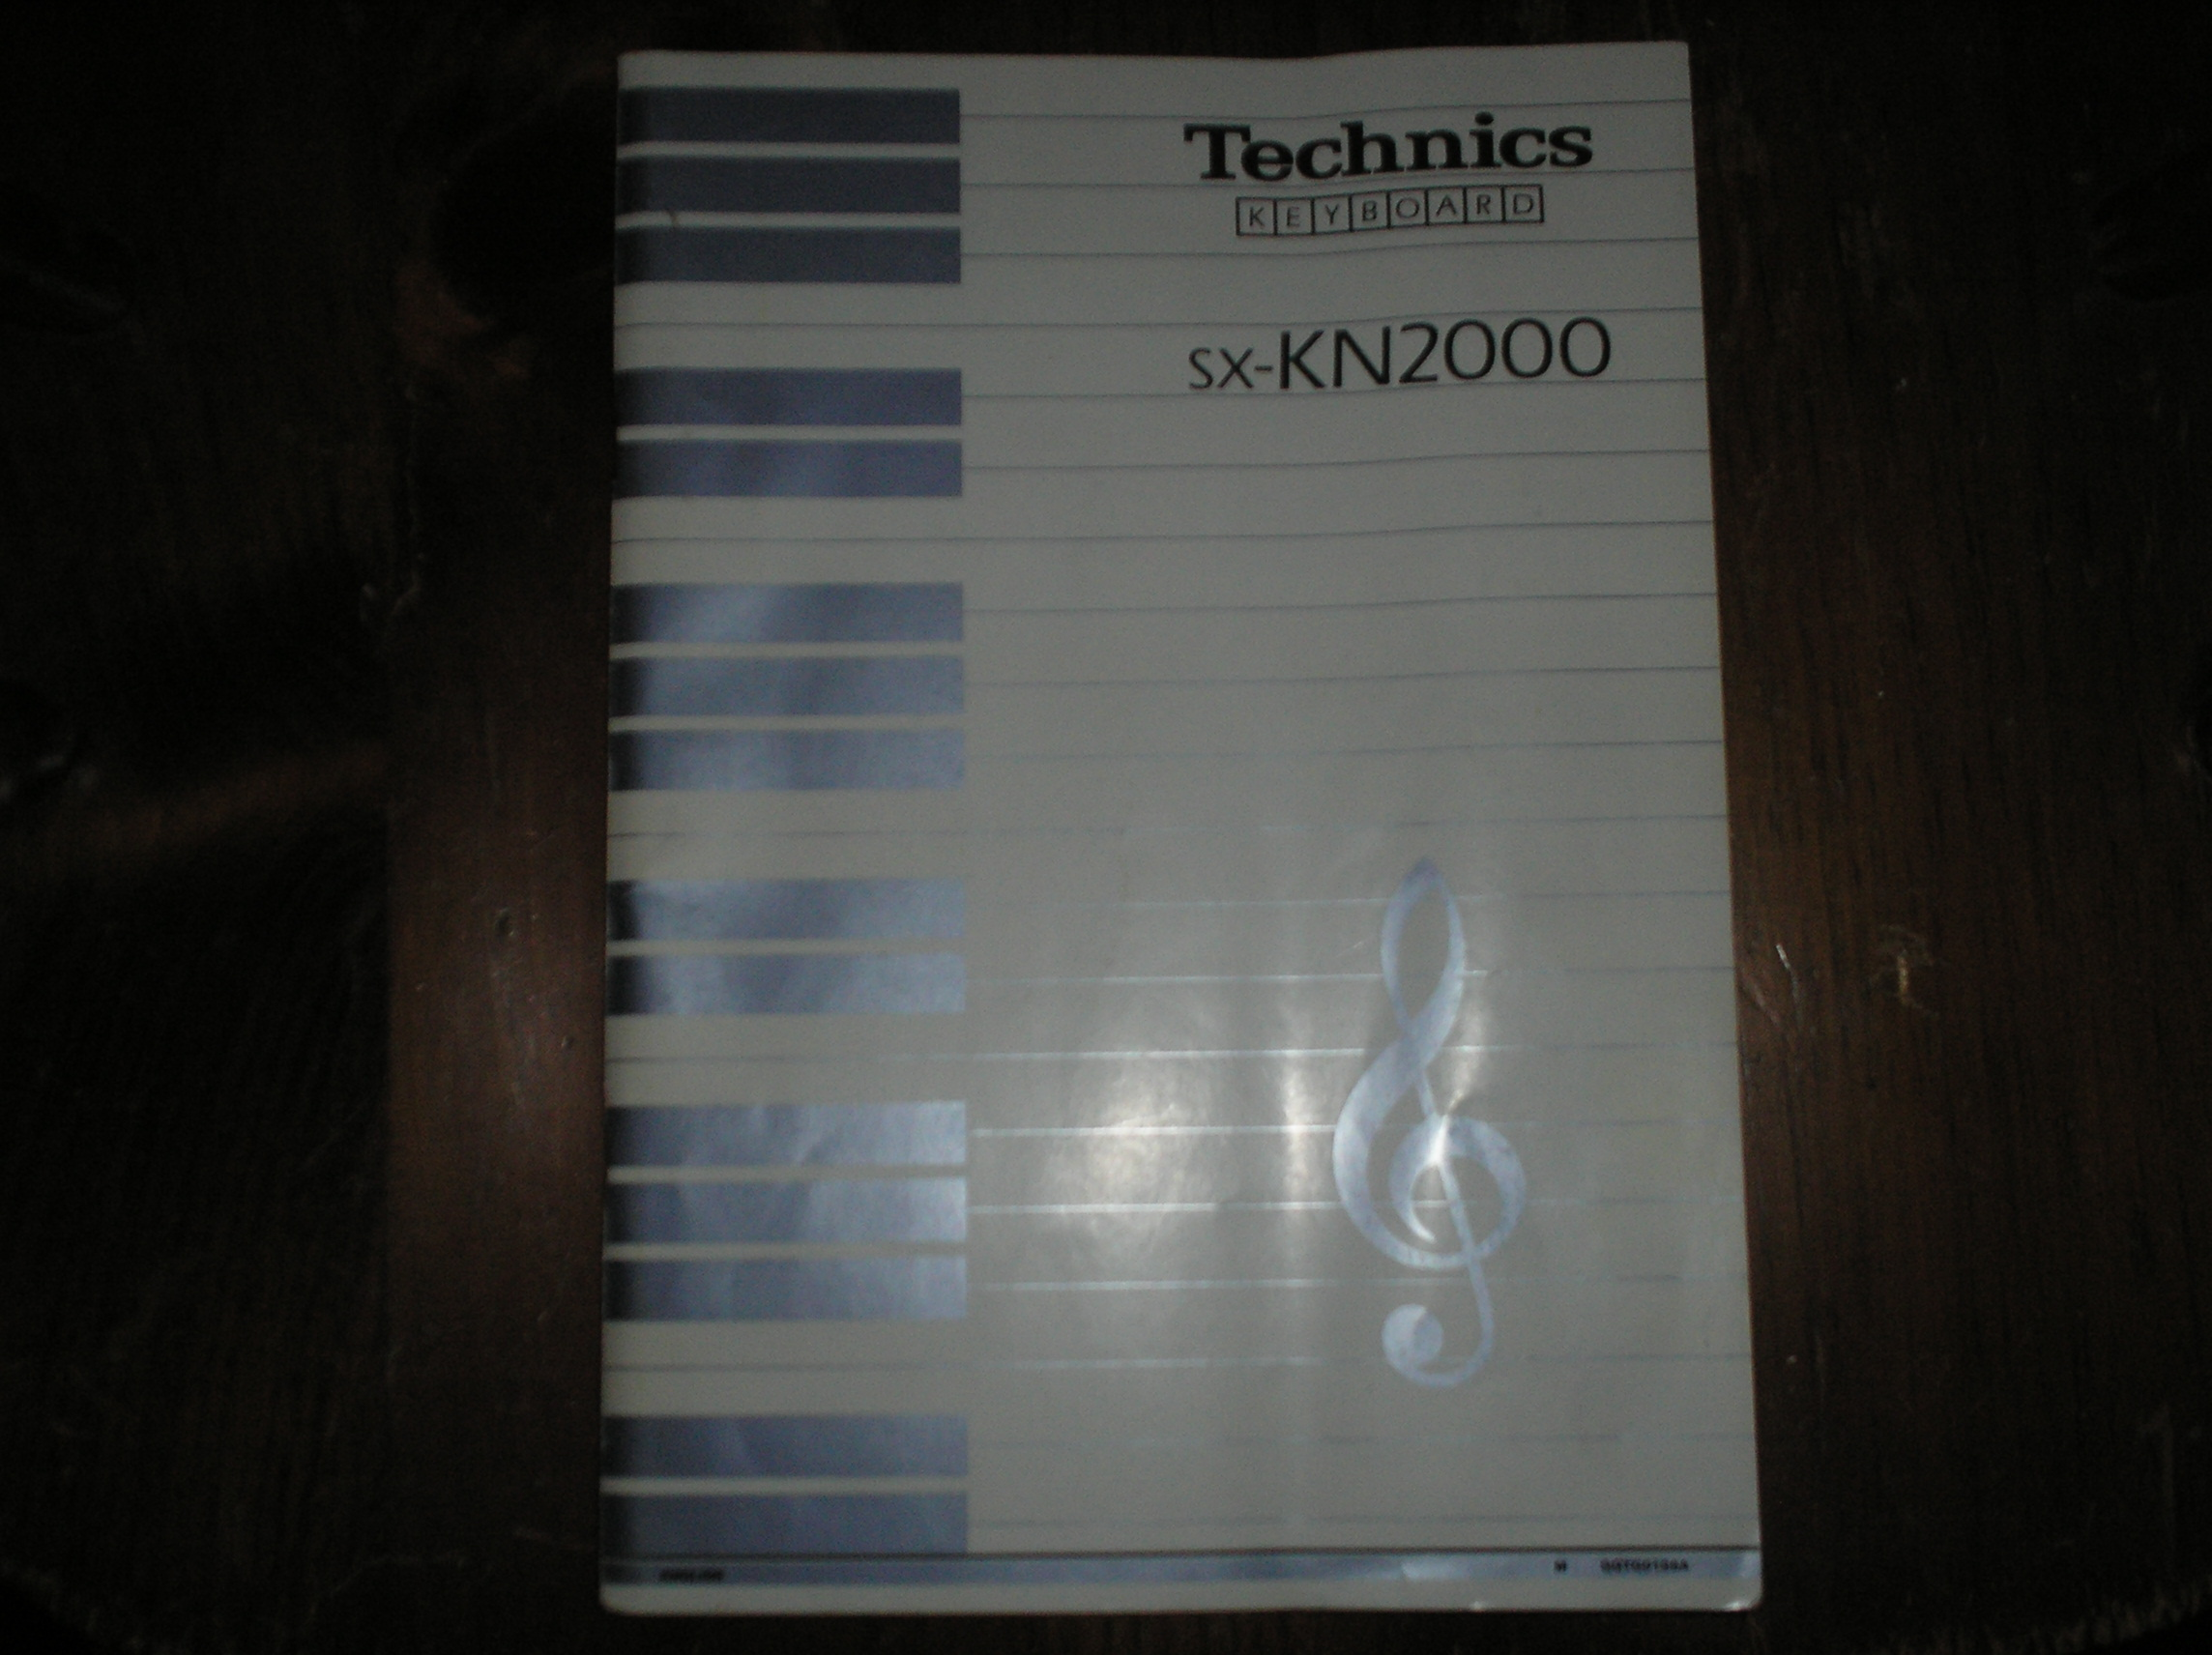 SX-KN2000 PCM Keyboard Operating Instruction Manual. 120 pages.